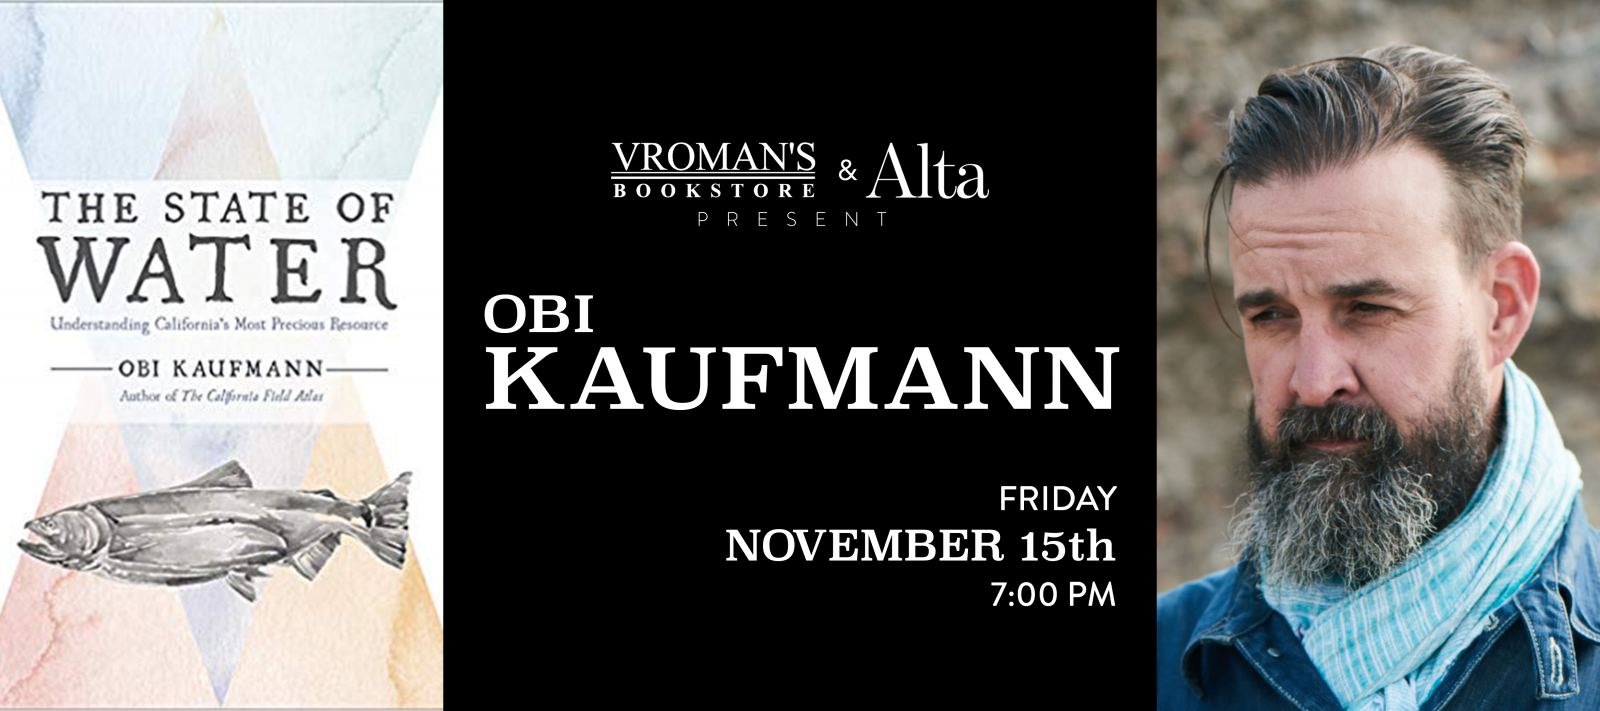 book signing with Obi Kaufmann Friday November 15 at 7pm